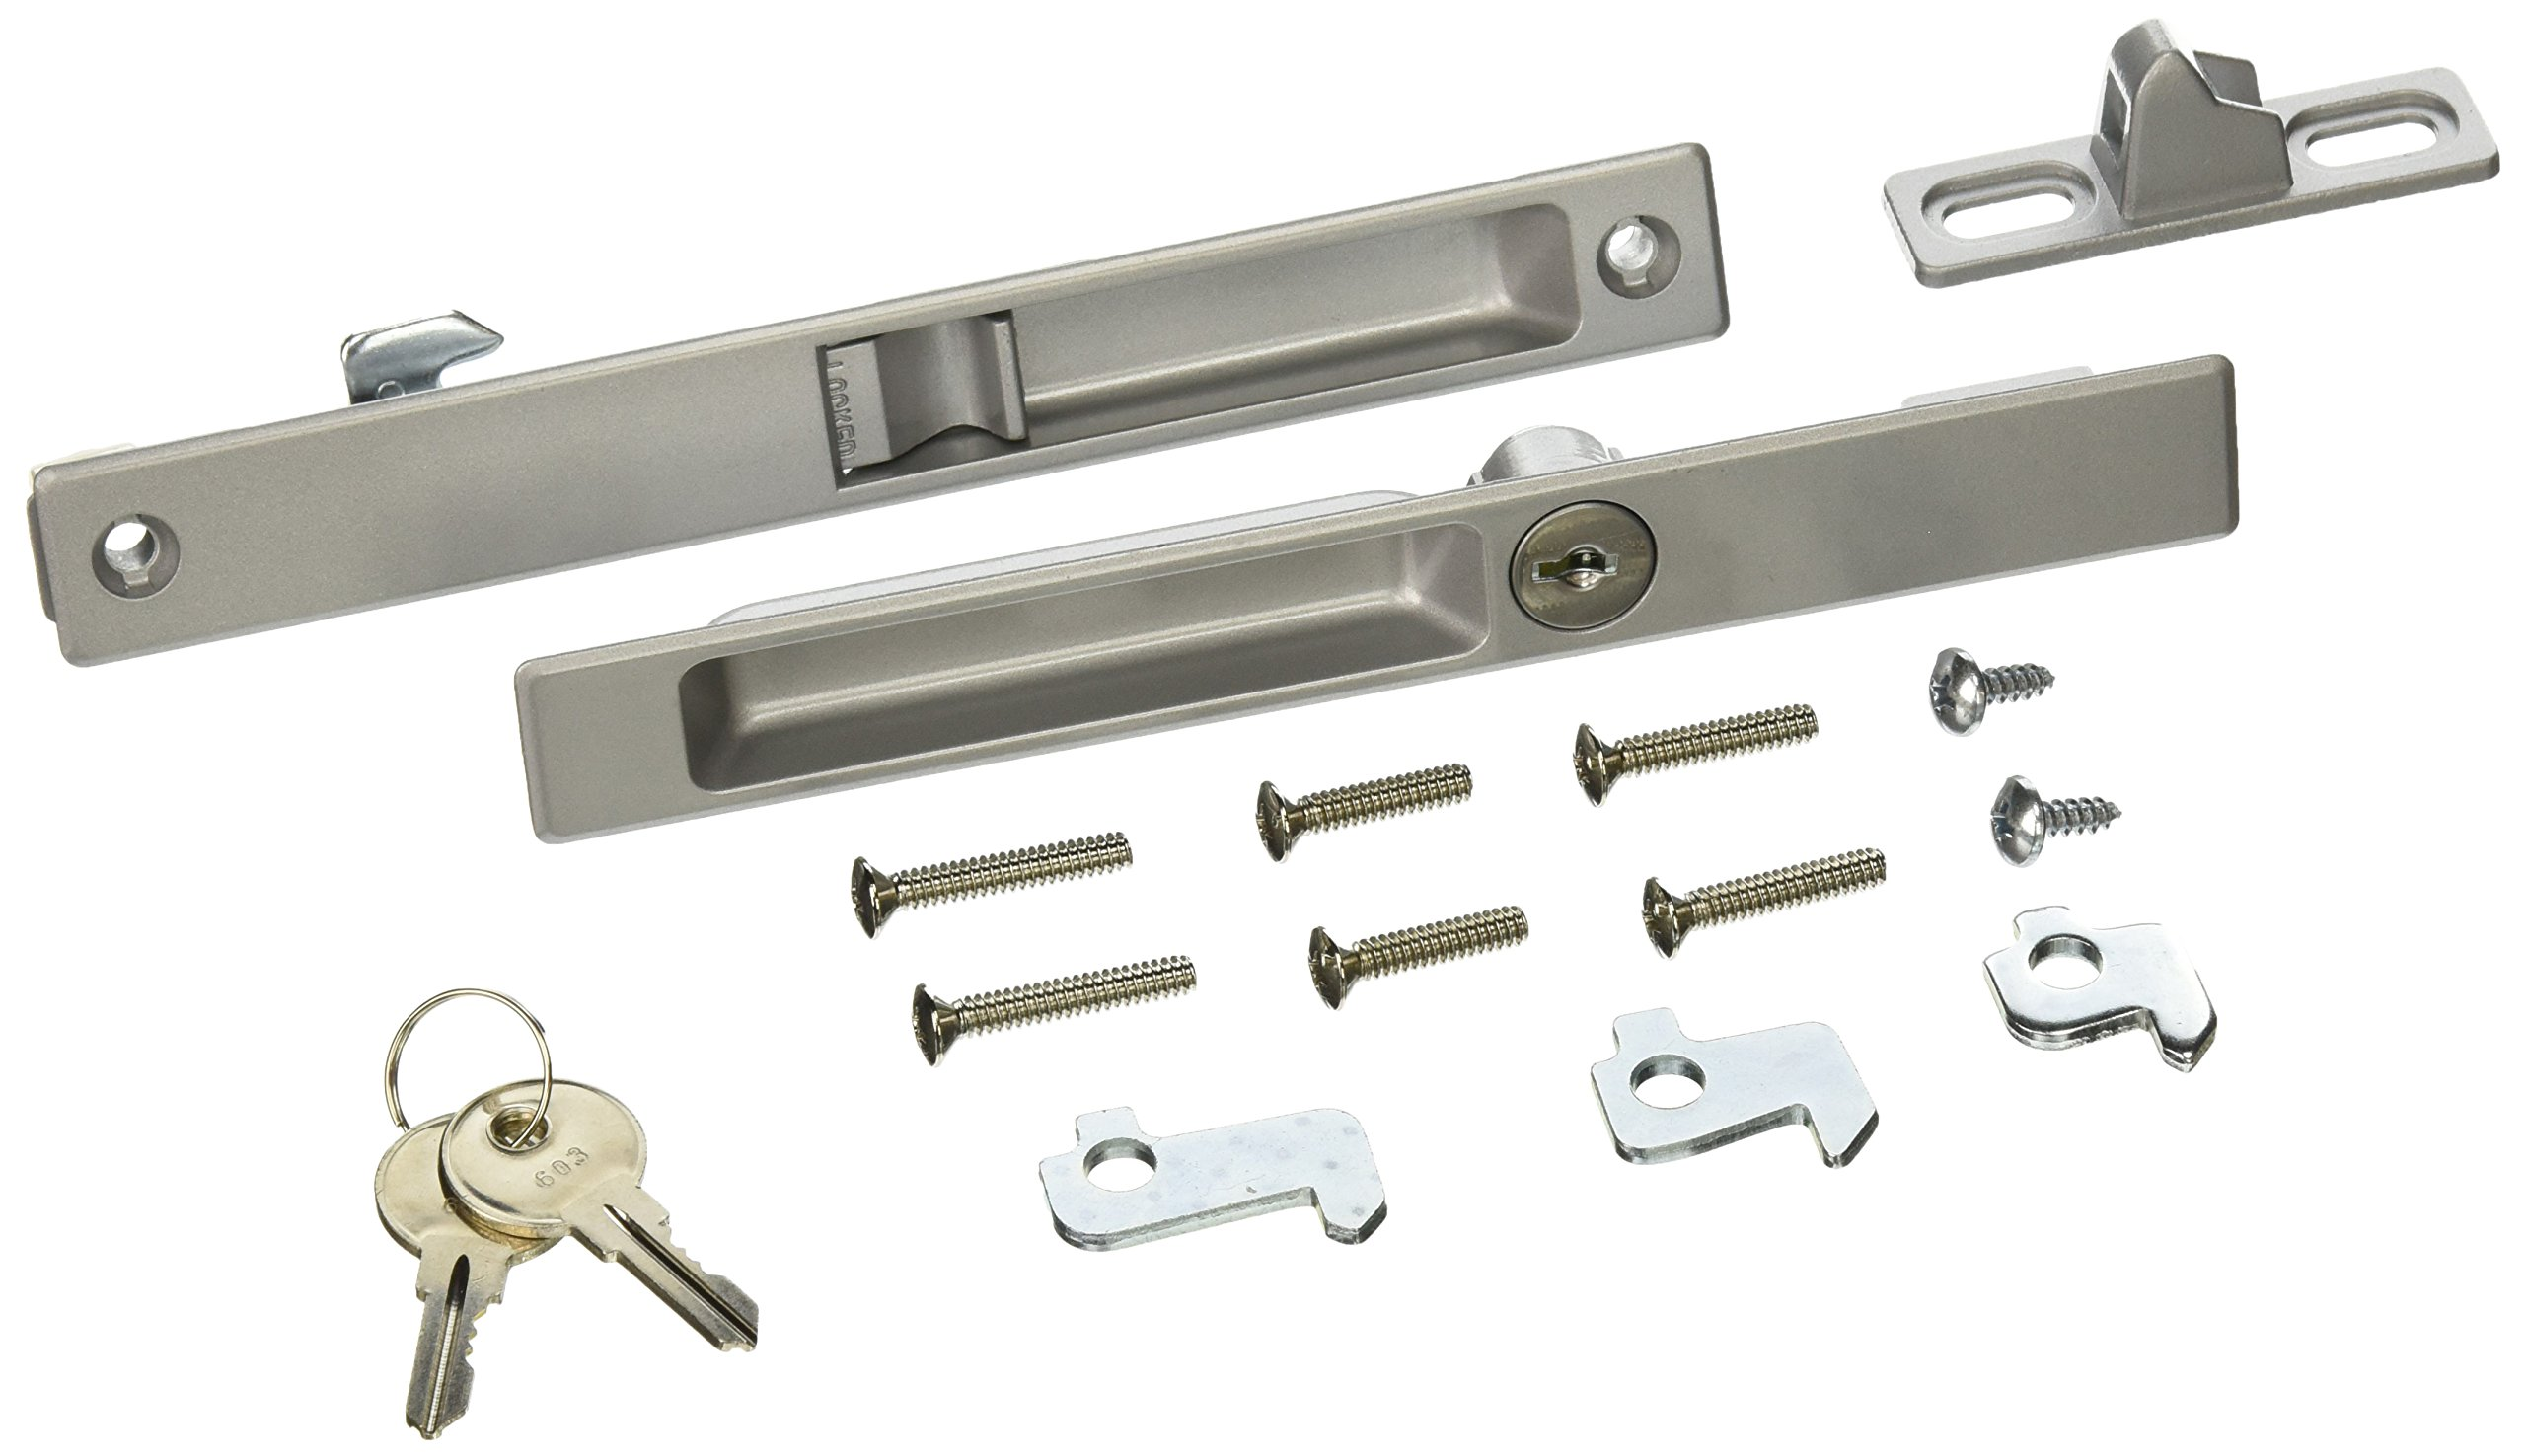 Wright Products VK1195 KEYED Flush MOUNT PATIO LATCH, ALUMINUM